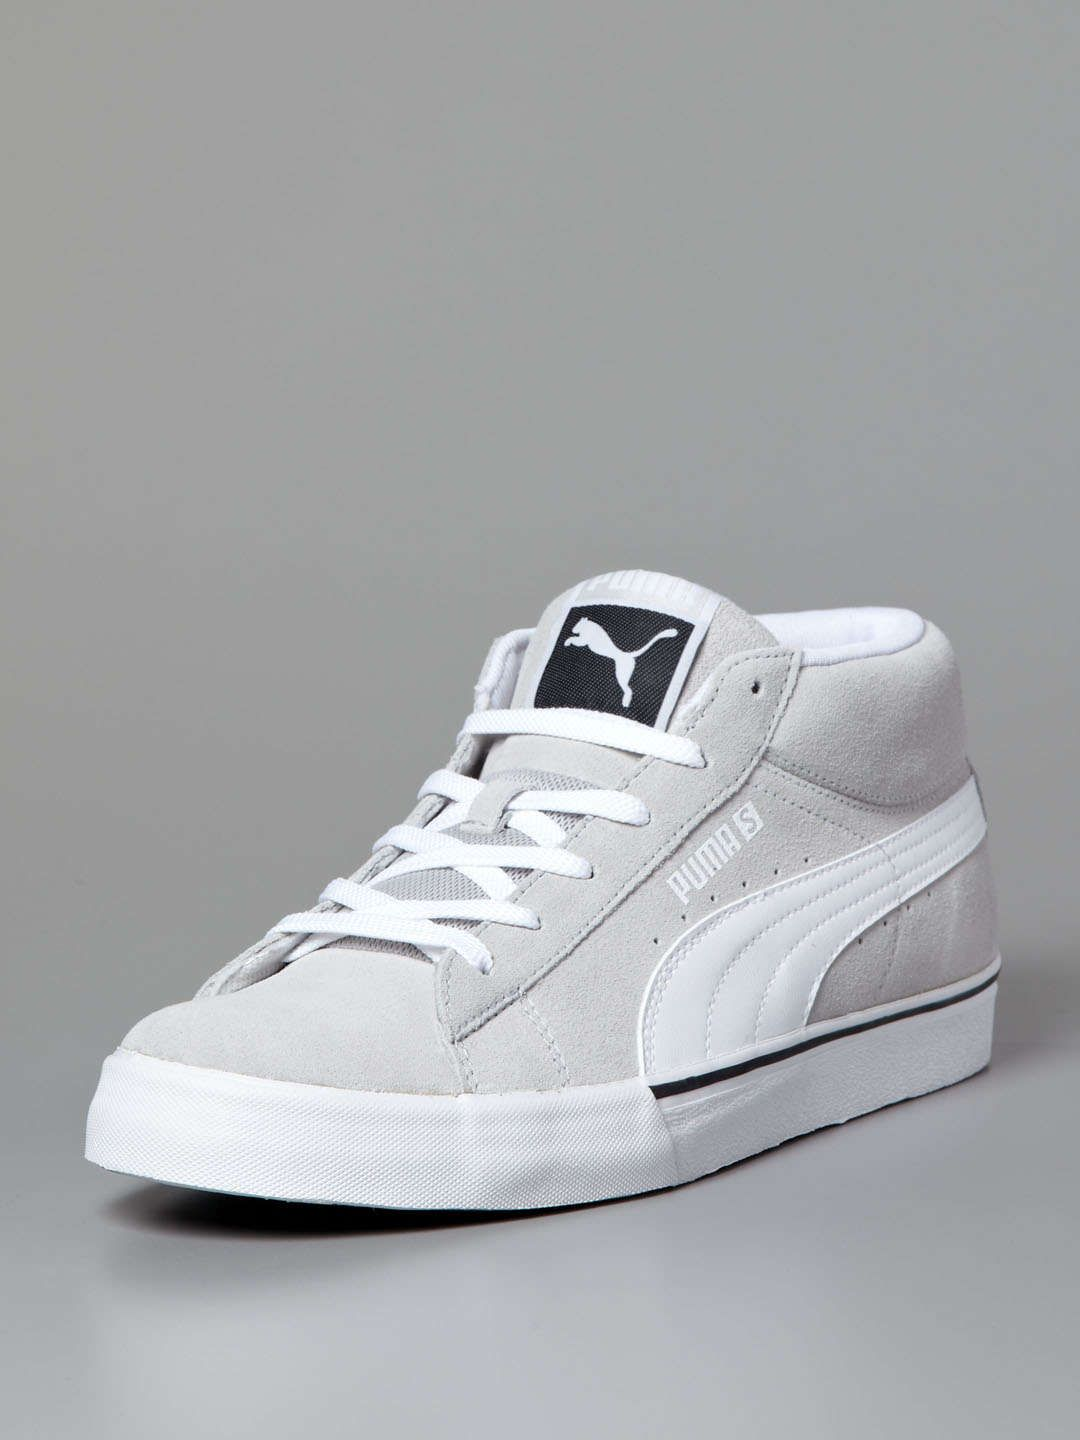 S Mid Top Sneaker | Puma sneakers, Nike headbands, Sneakers